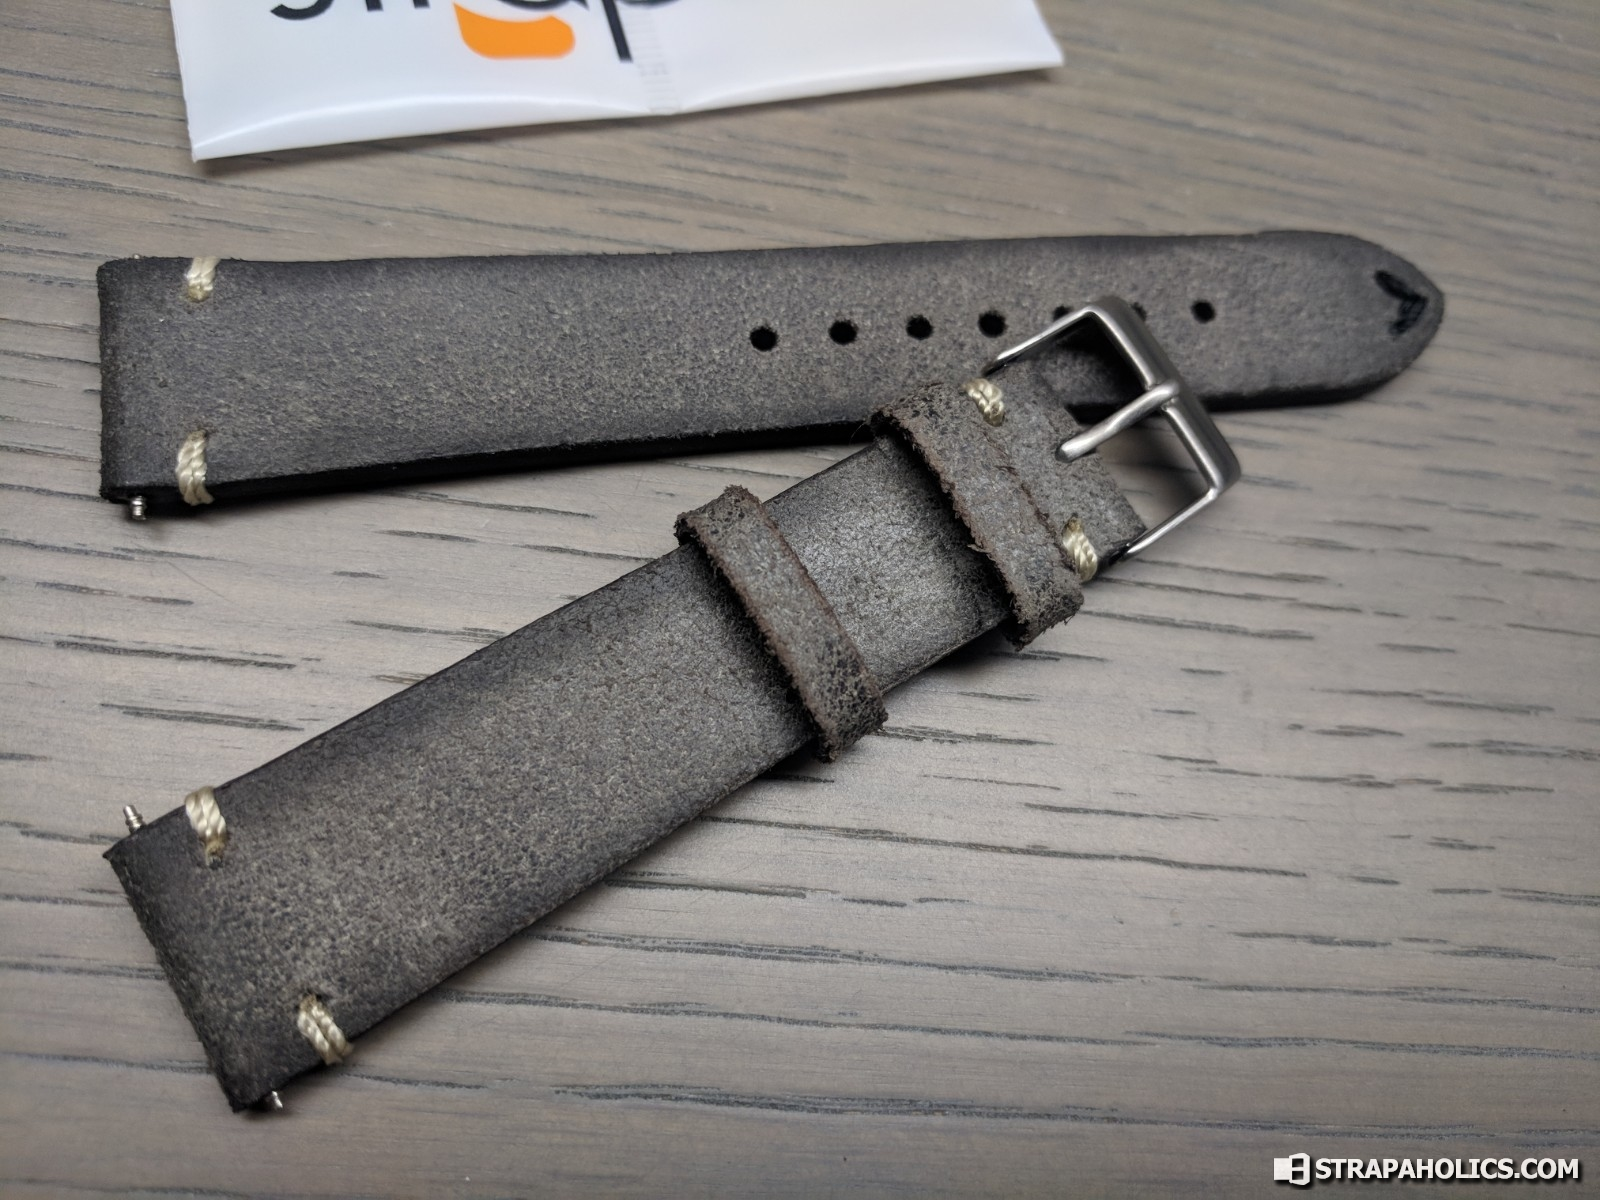 1af53d4d8 Let's take a look at this Grey distressed strap first. Great little  distressed piece with vintage-inspired stitching. The different colored  stitching at the ...